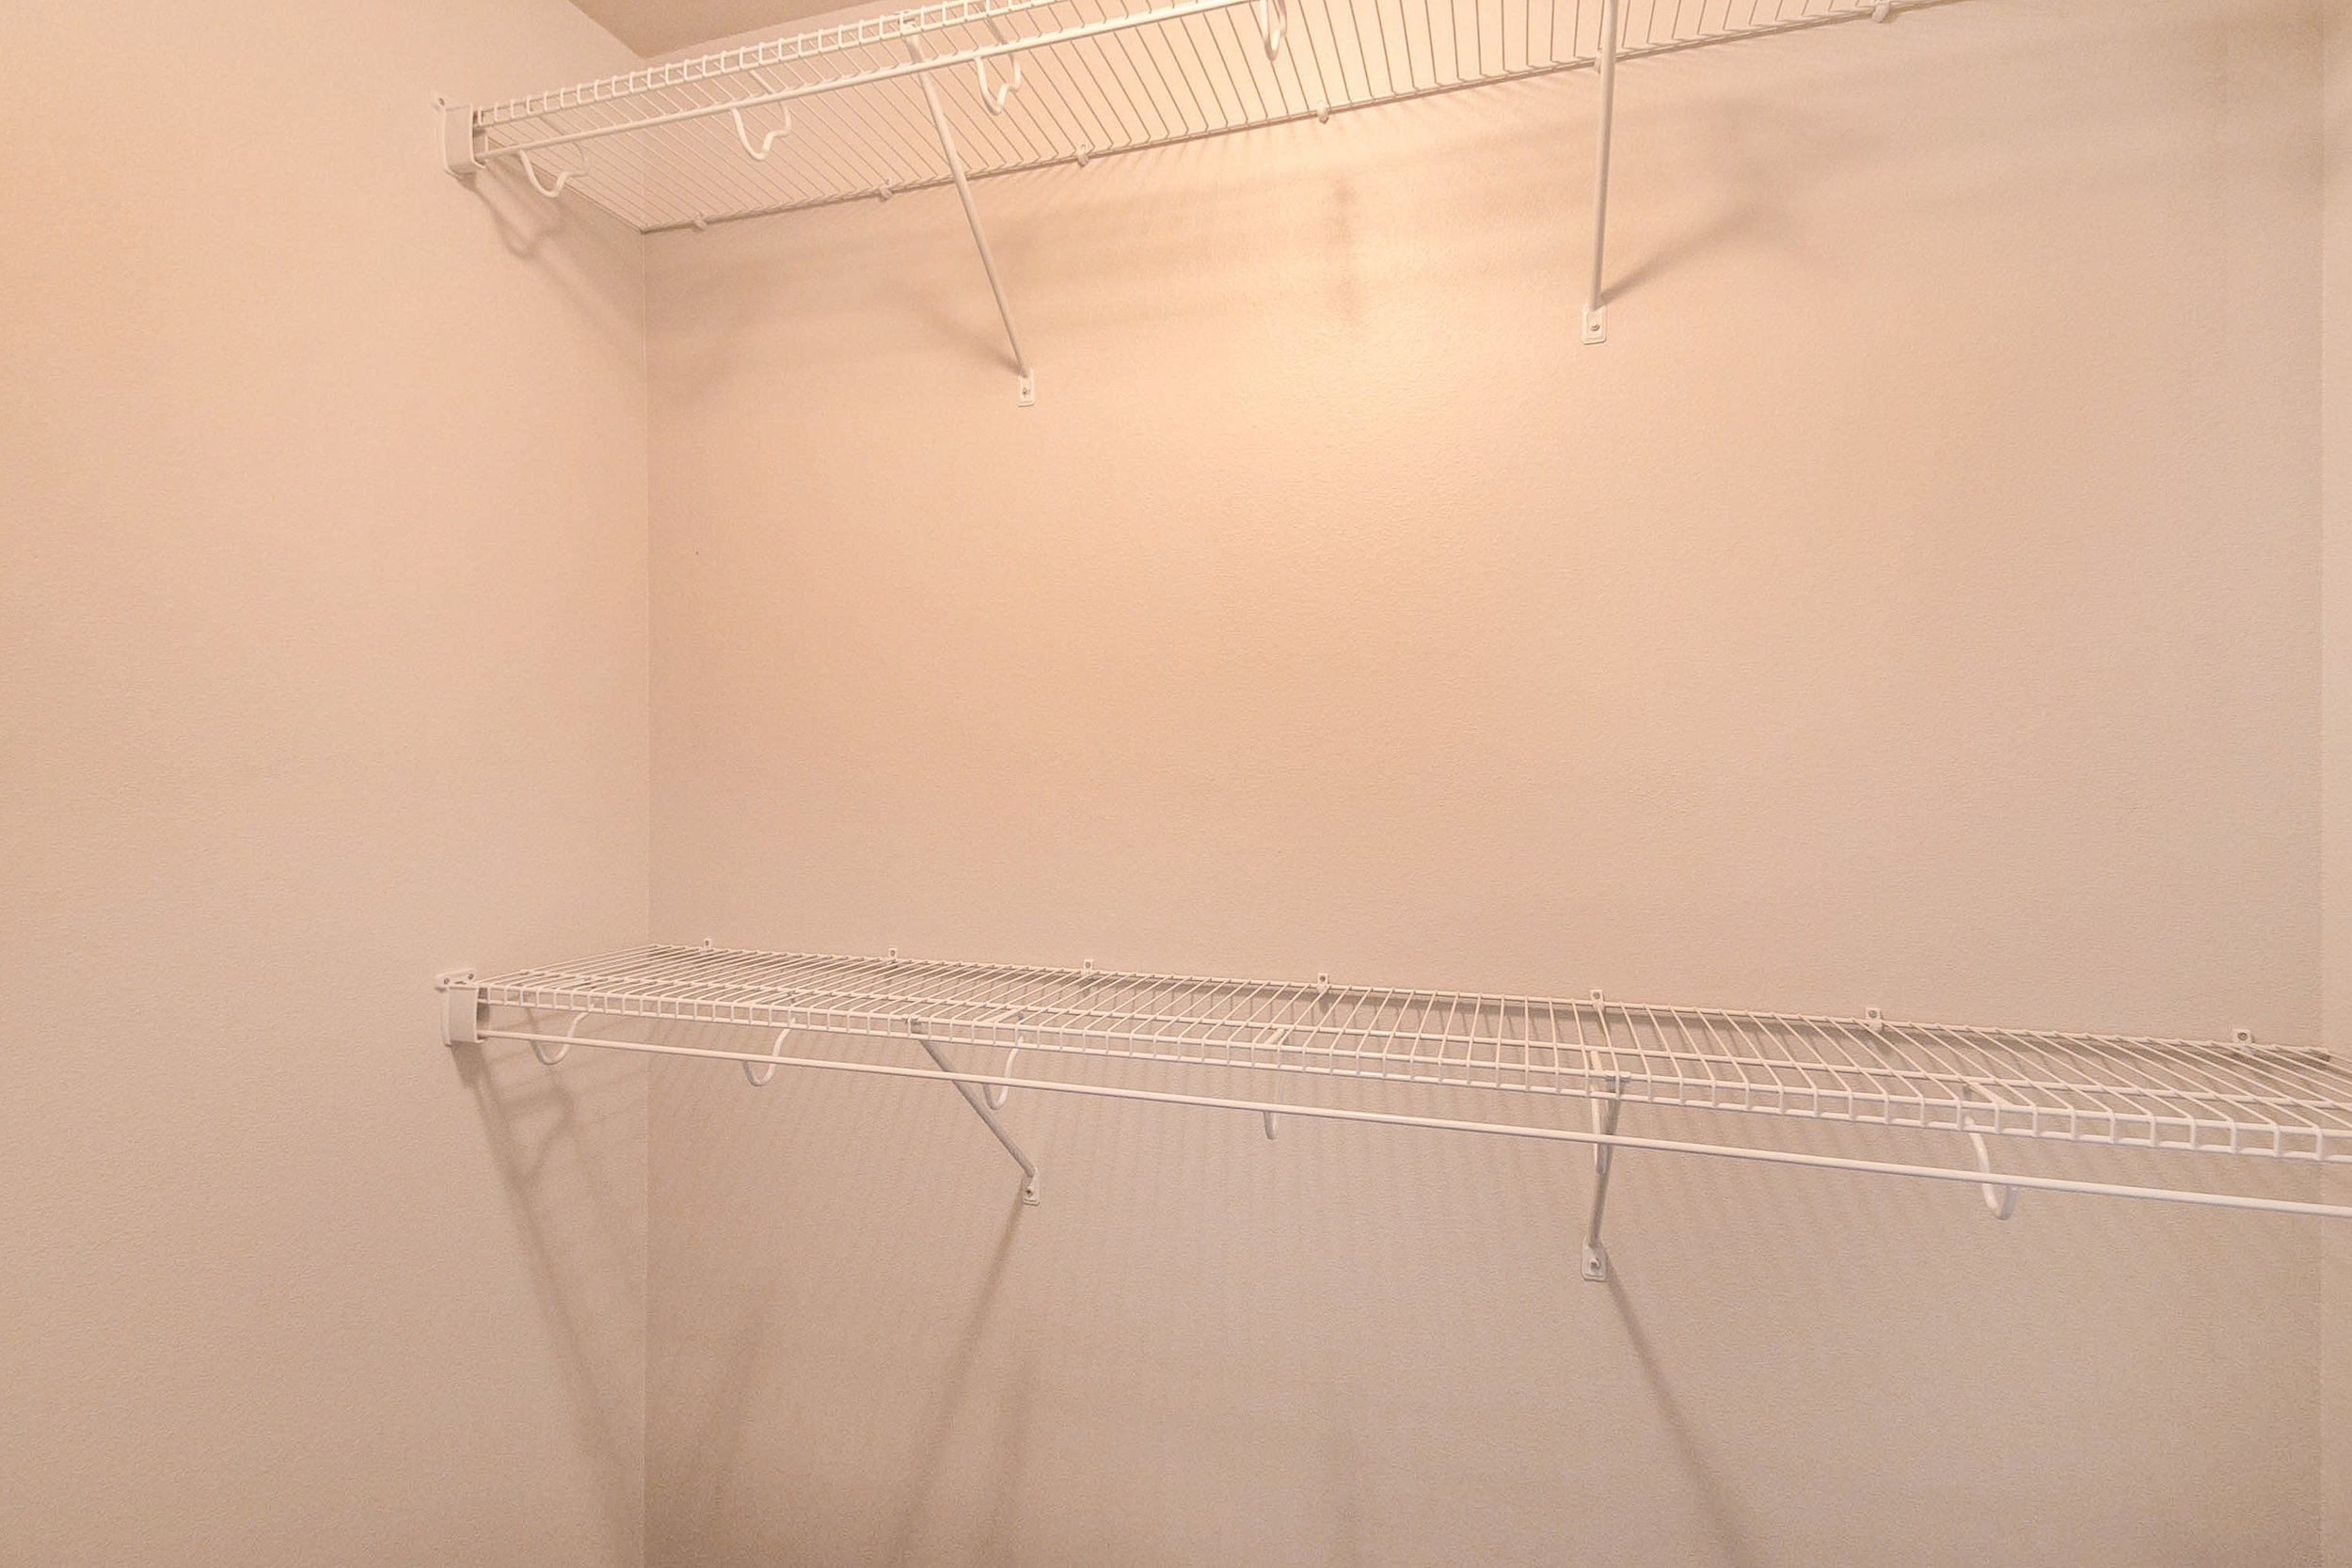 808_on_5th_project_MLS_HID1047709_ROOMmasterbedroomcloset517.jpg